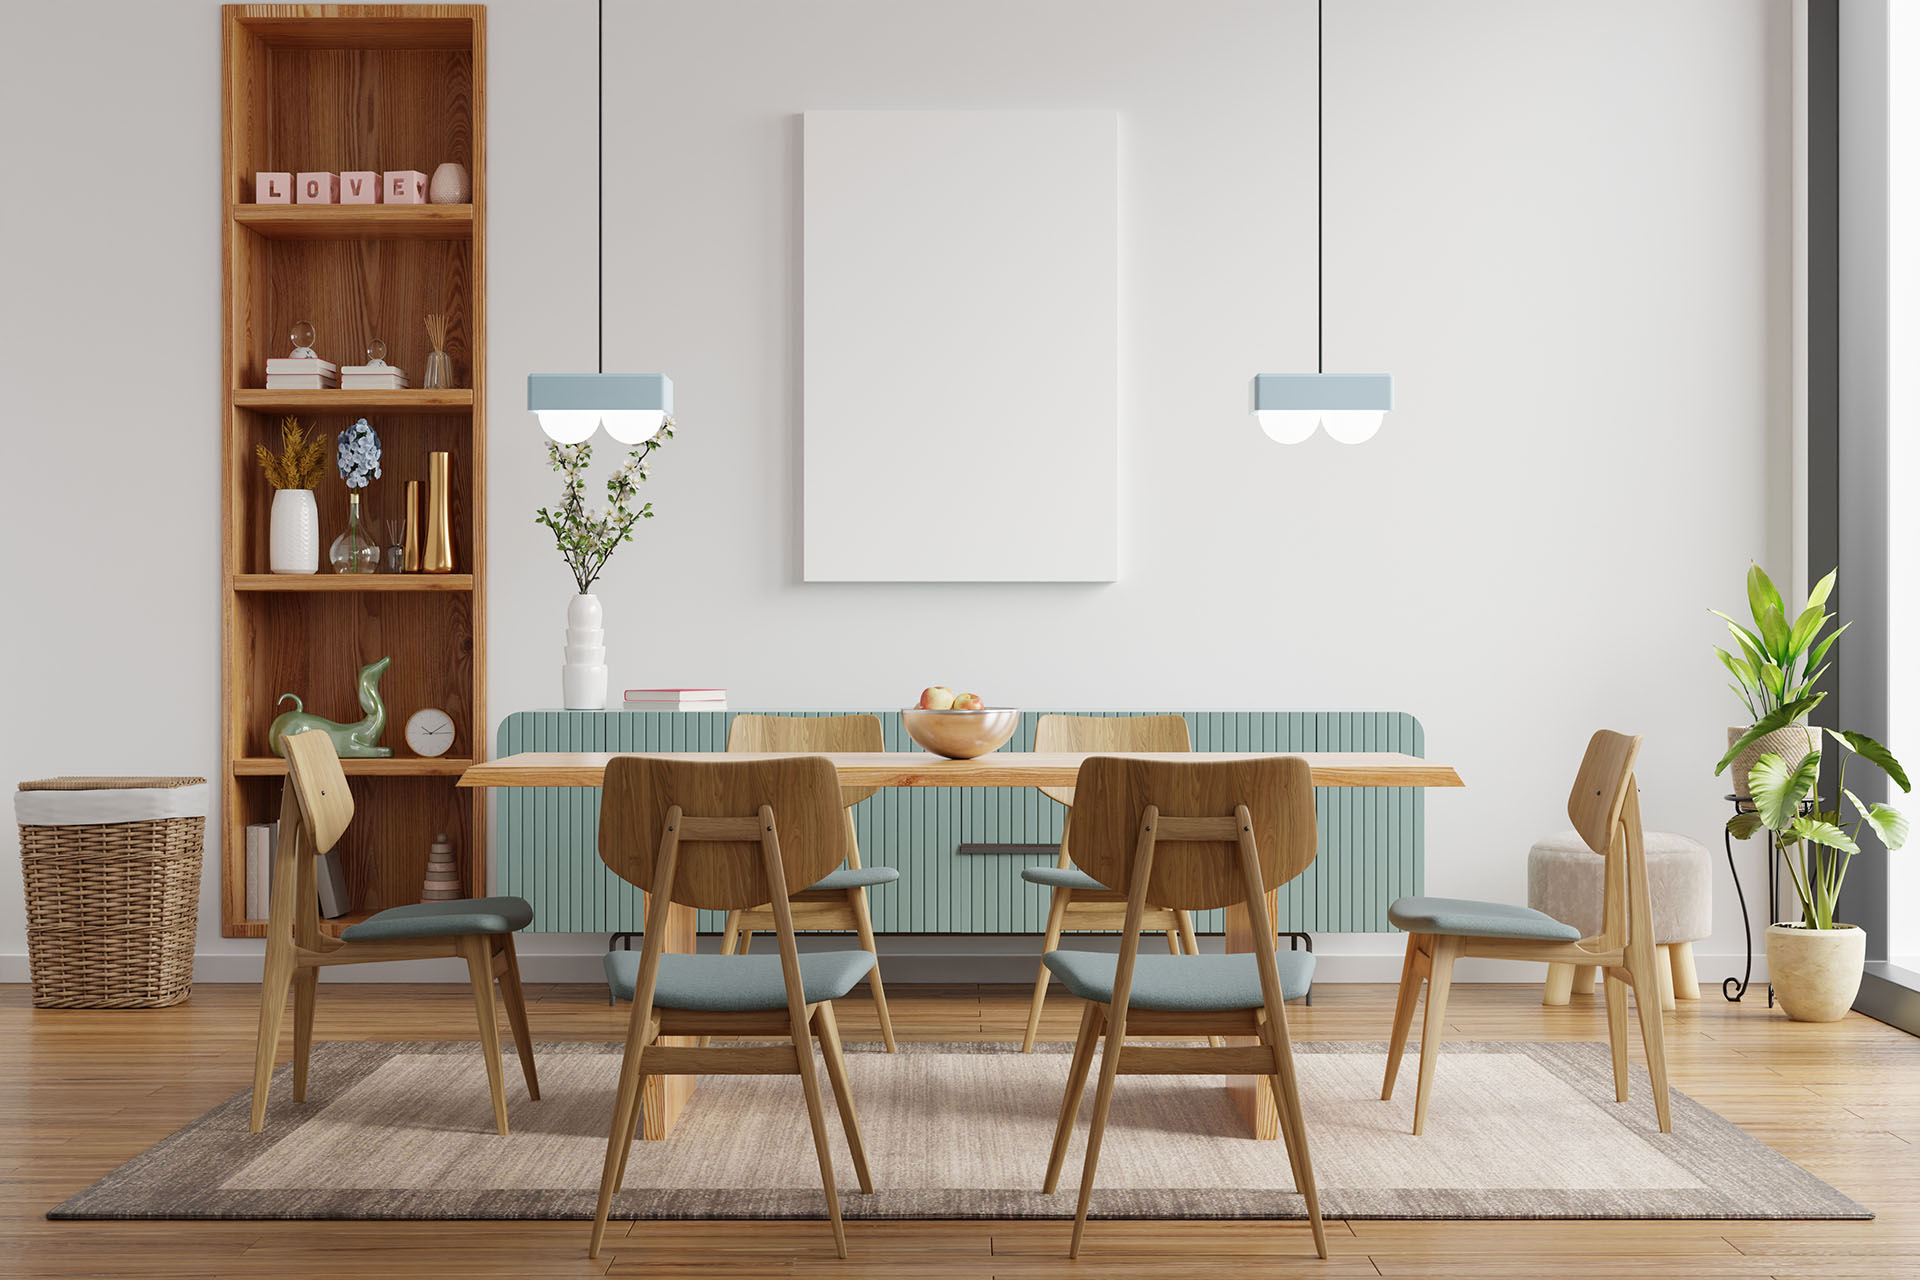 Mock up poster in modern dining room interior design with white empty wall.3d rendering